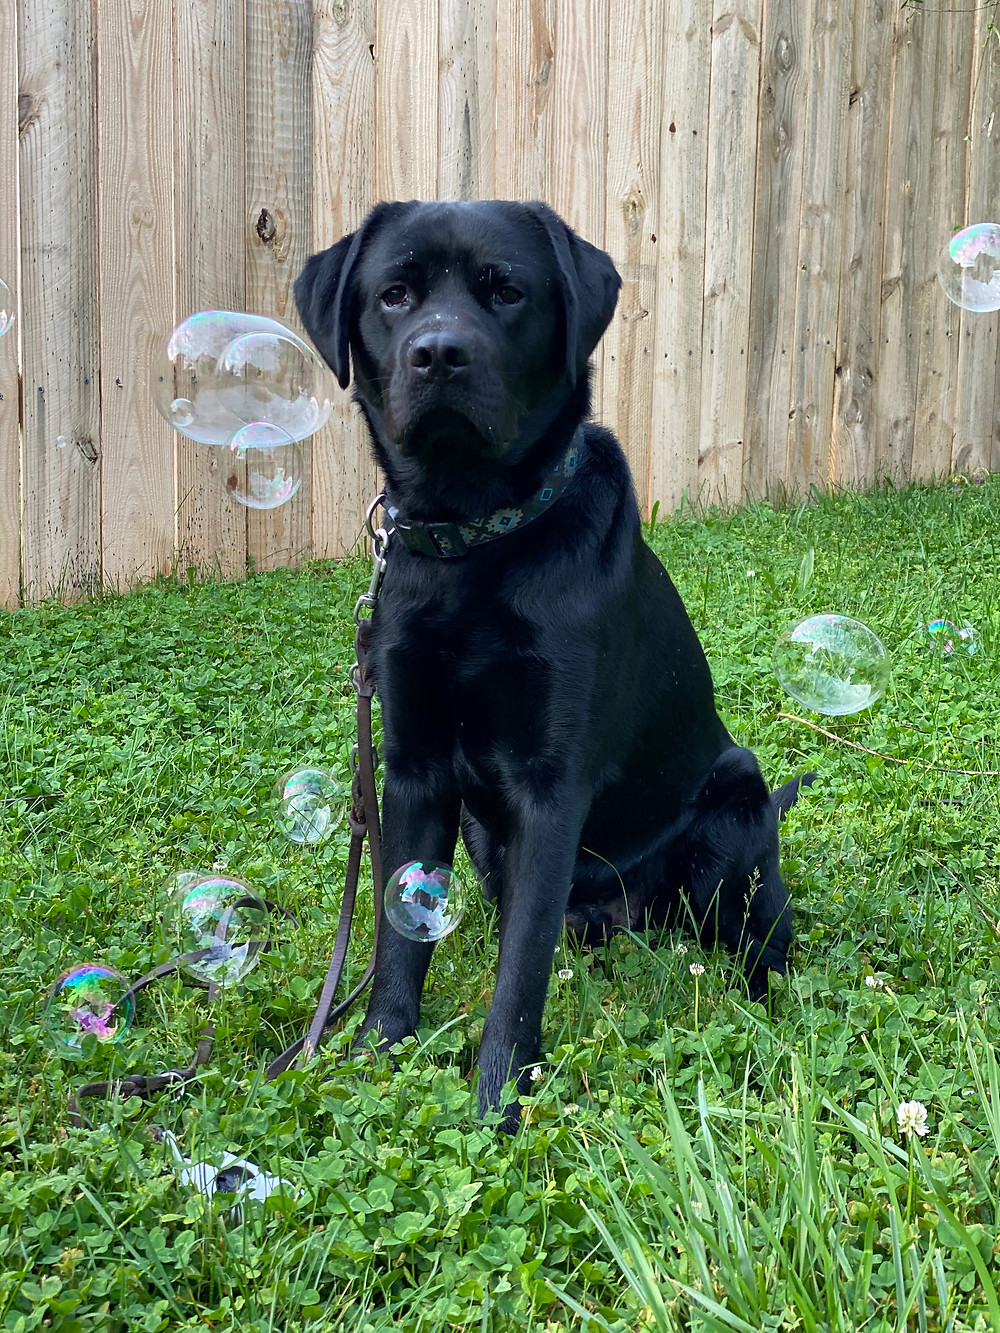 A black lab sits in the grass with a fence behind them. There are bubbles floating in the air all around the dog.